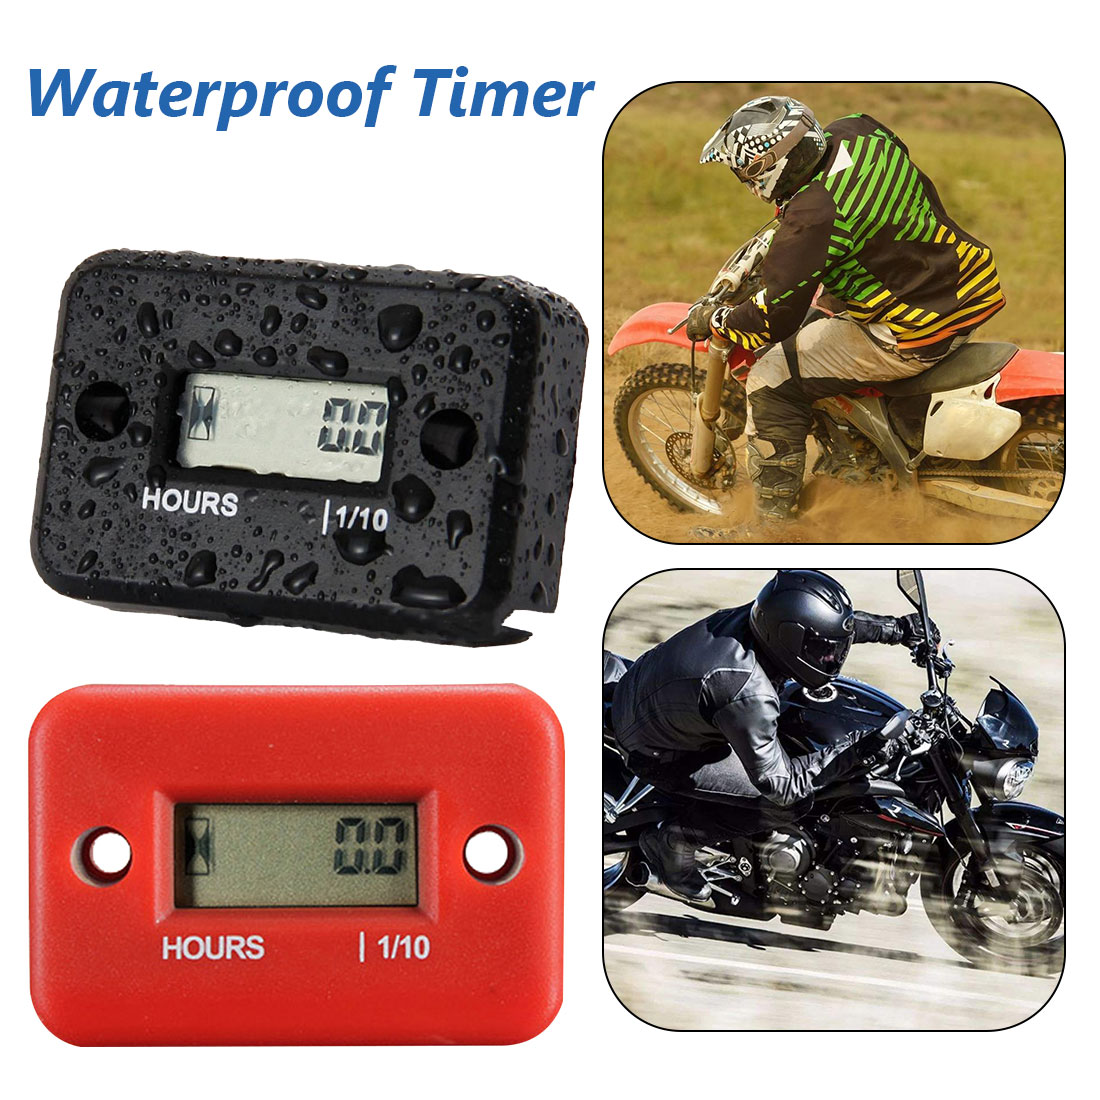 0-9999.9H Inductive Digital Hour Meter Waterproof Engine Gauge Hour Meter LCD Display for Bike Motorcycle ATV Boat0-9999.9H Inductive Digital Hour Meter Waterproof Engine Gauge Hour Meter LCD Display for Bike Motorcycle ATV Boat